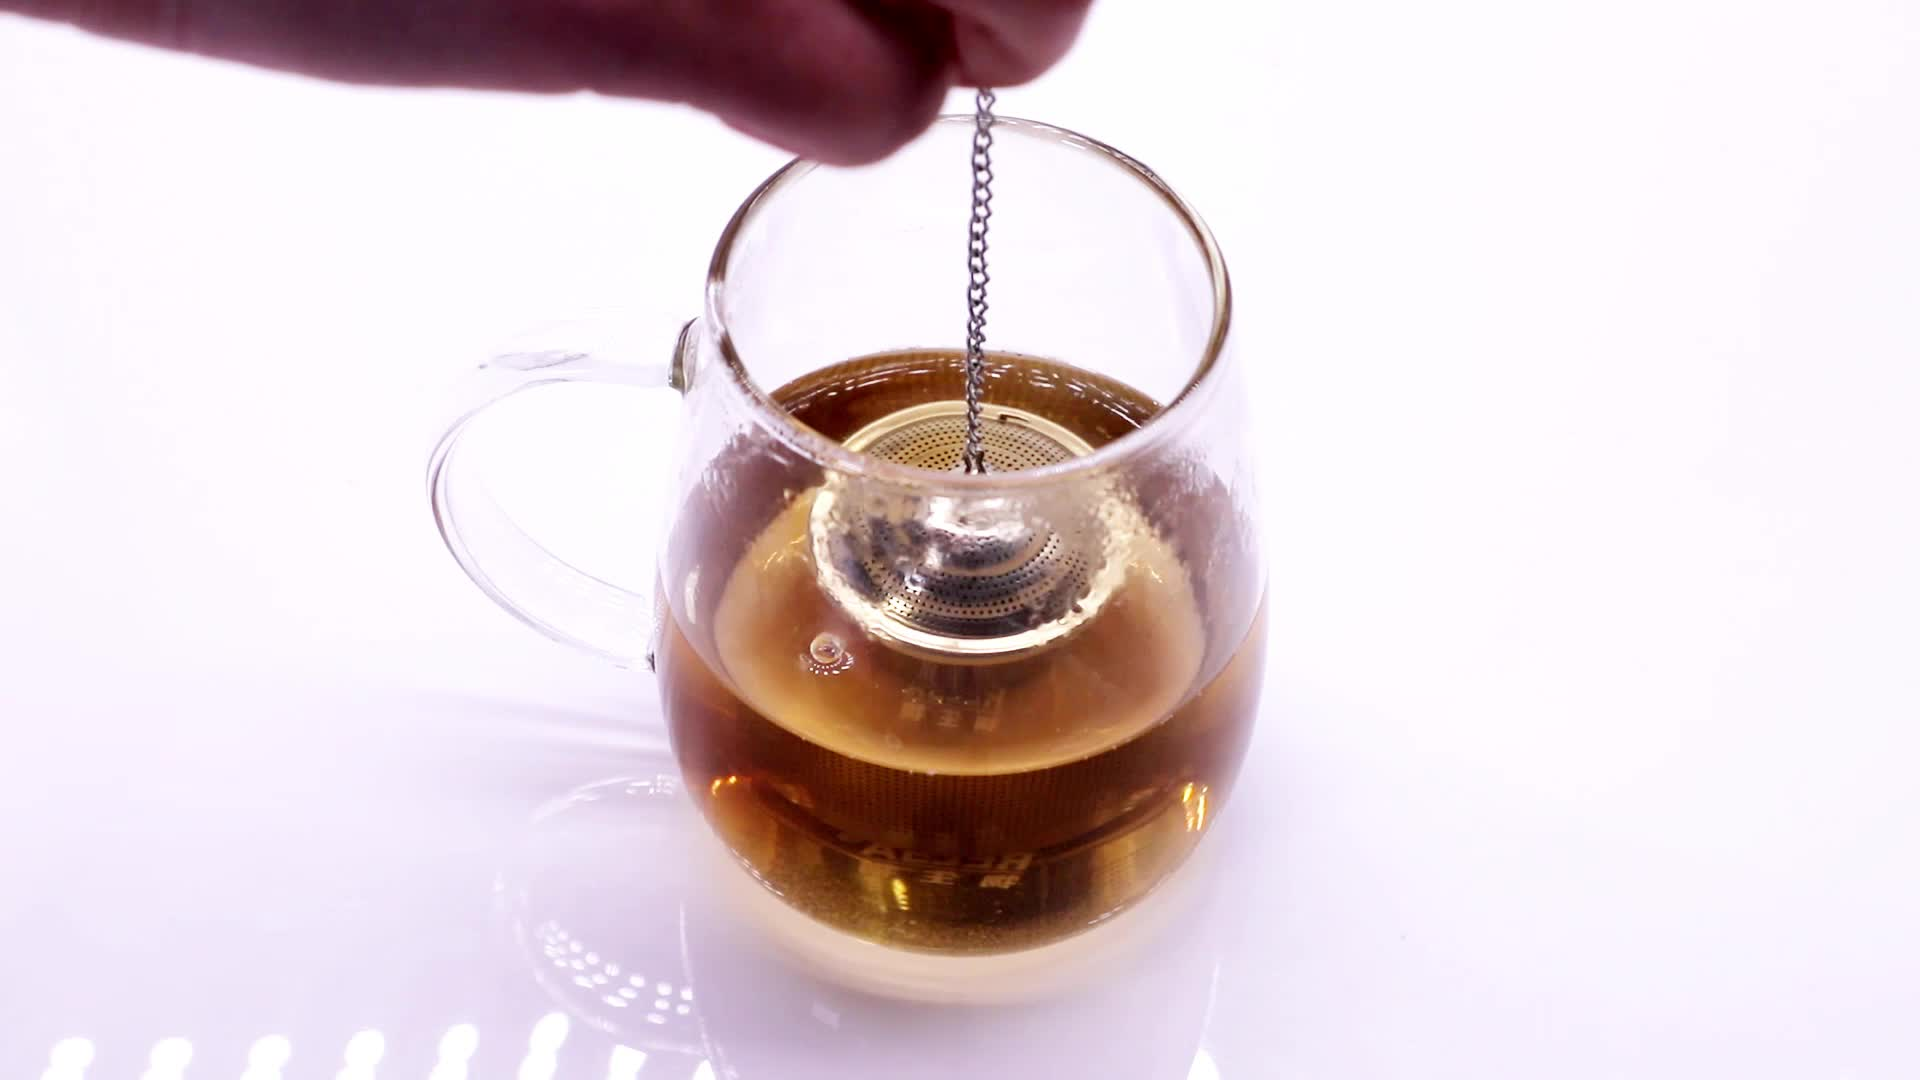 Rose Gold Loose Leaf Tea Infuser (Set of 2) with Tea Scoop and Drip Tray - Ultra Fine Stainless Steel Strainer & Steeper